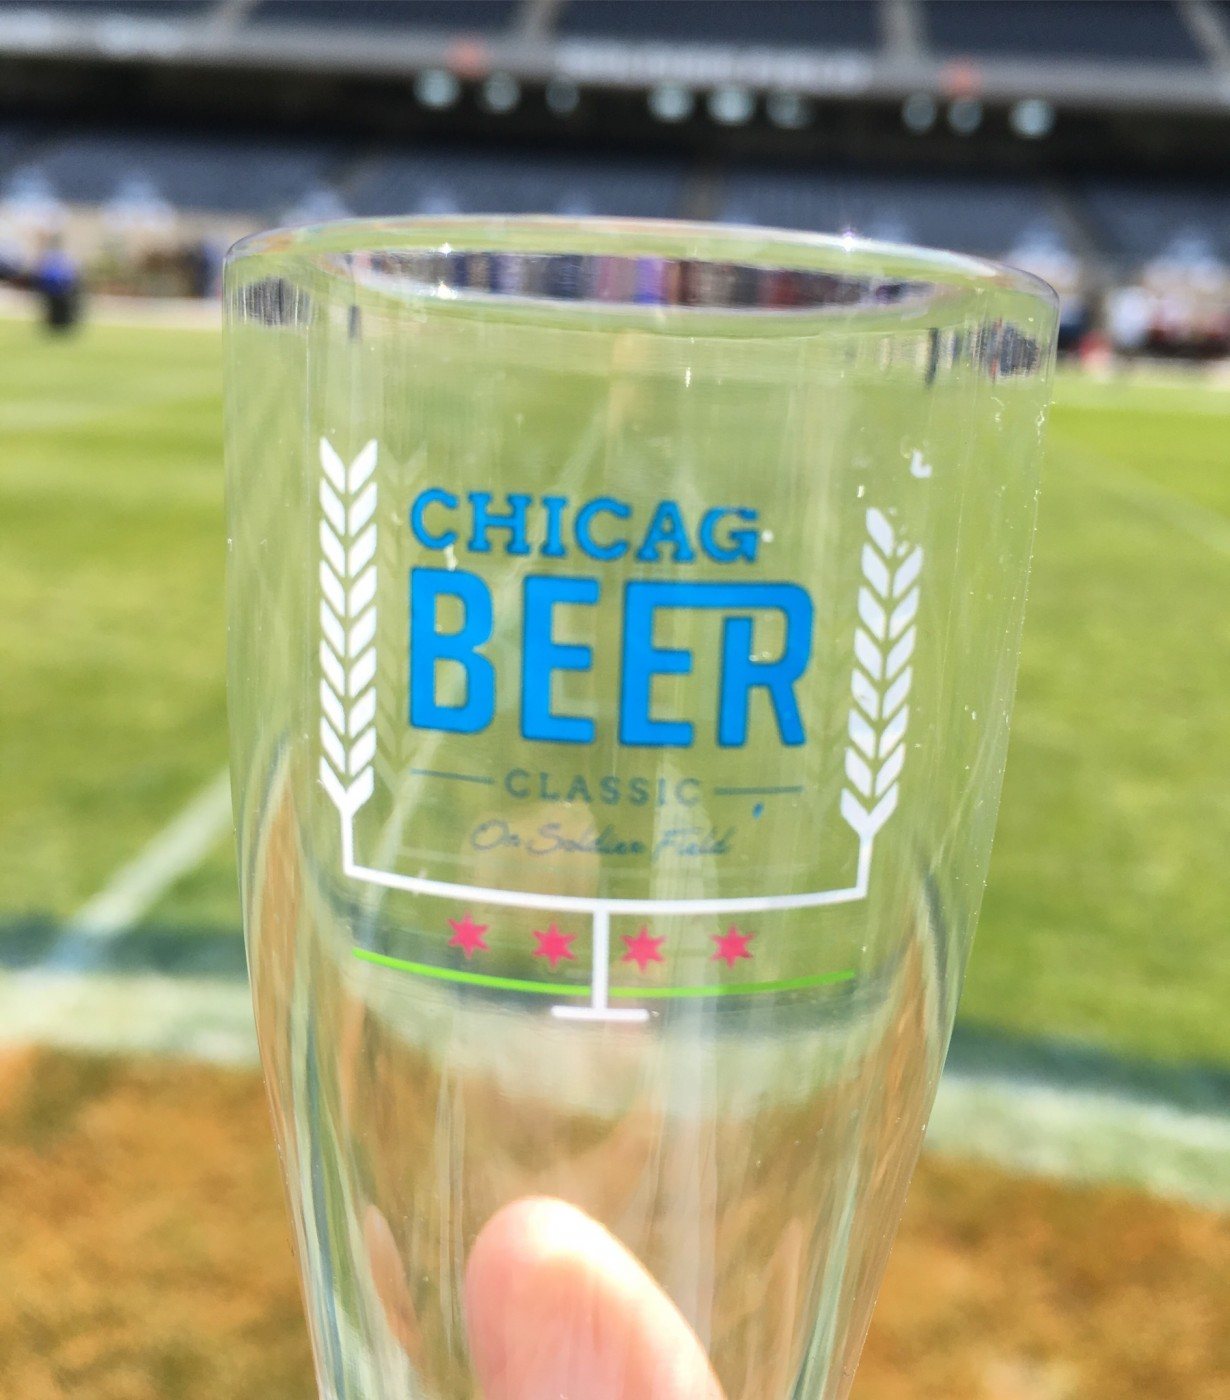 The tasting glass for this year's Chicago Beer Classic. Mine was missing the 'O'